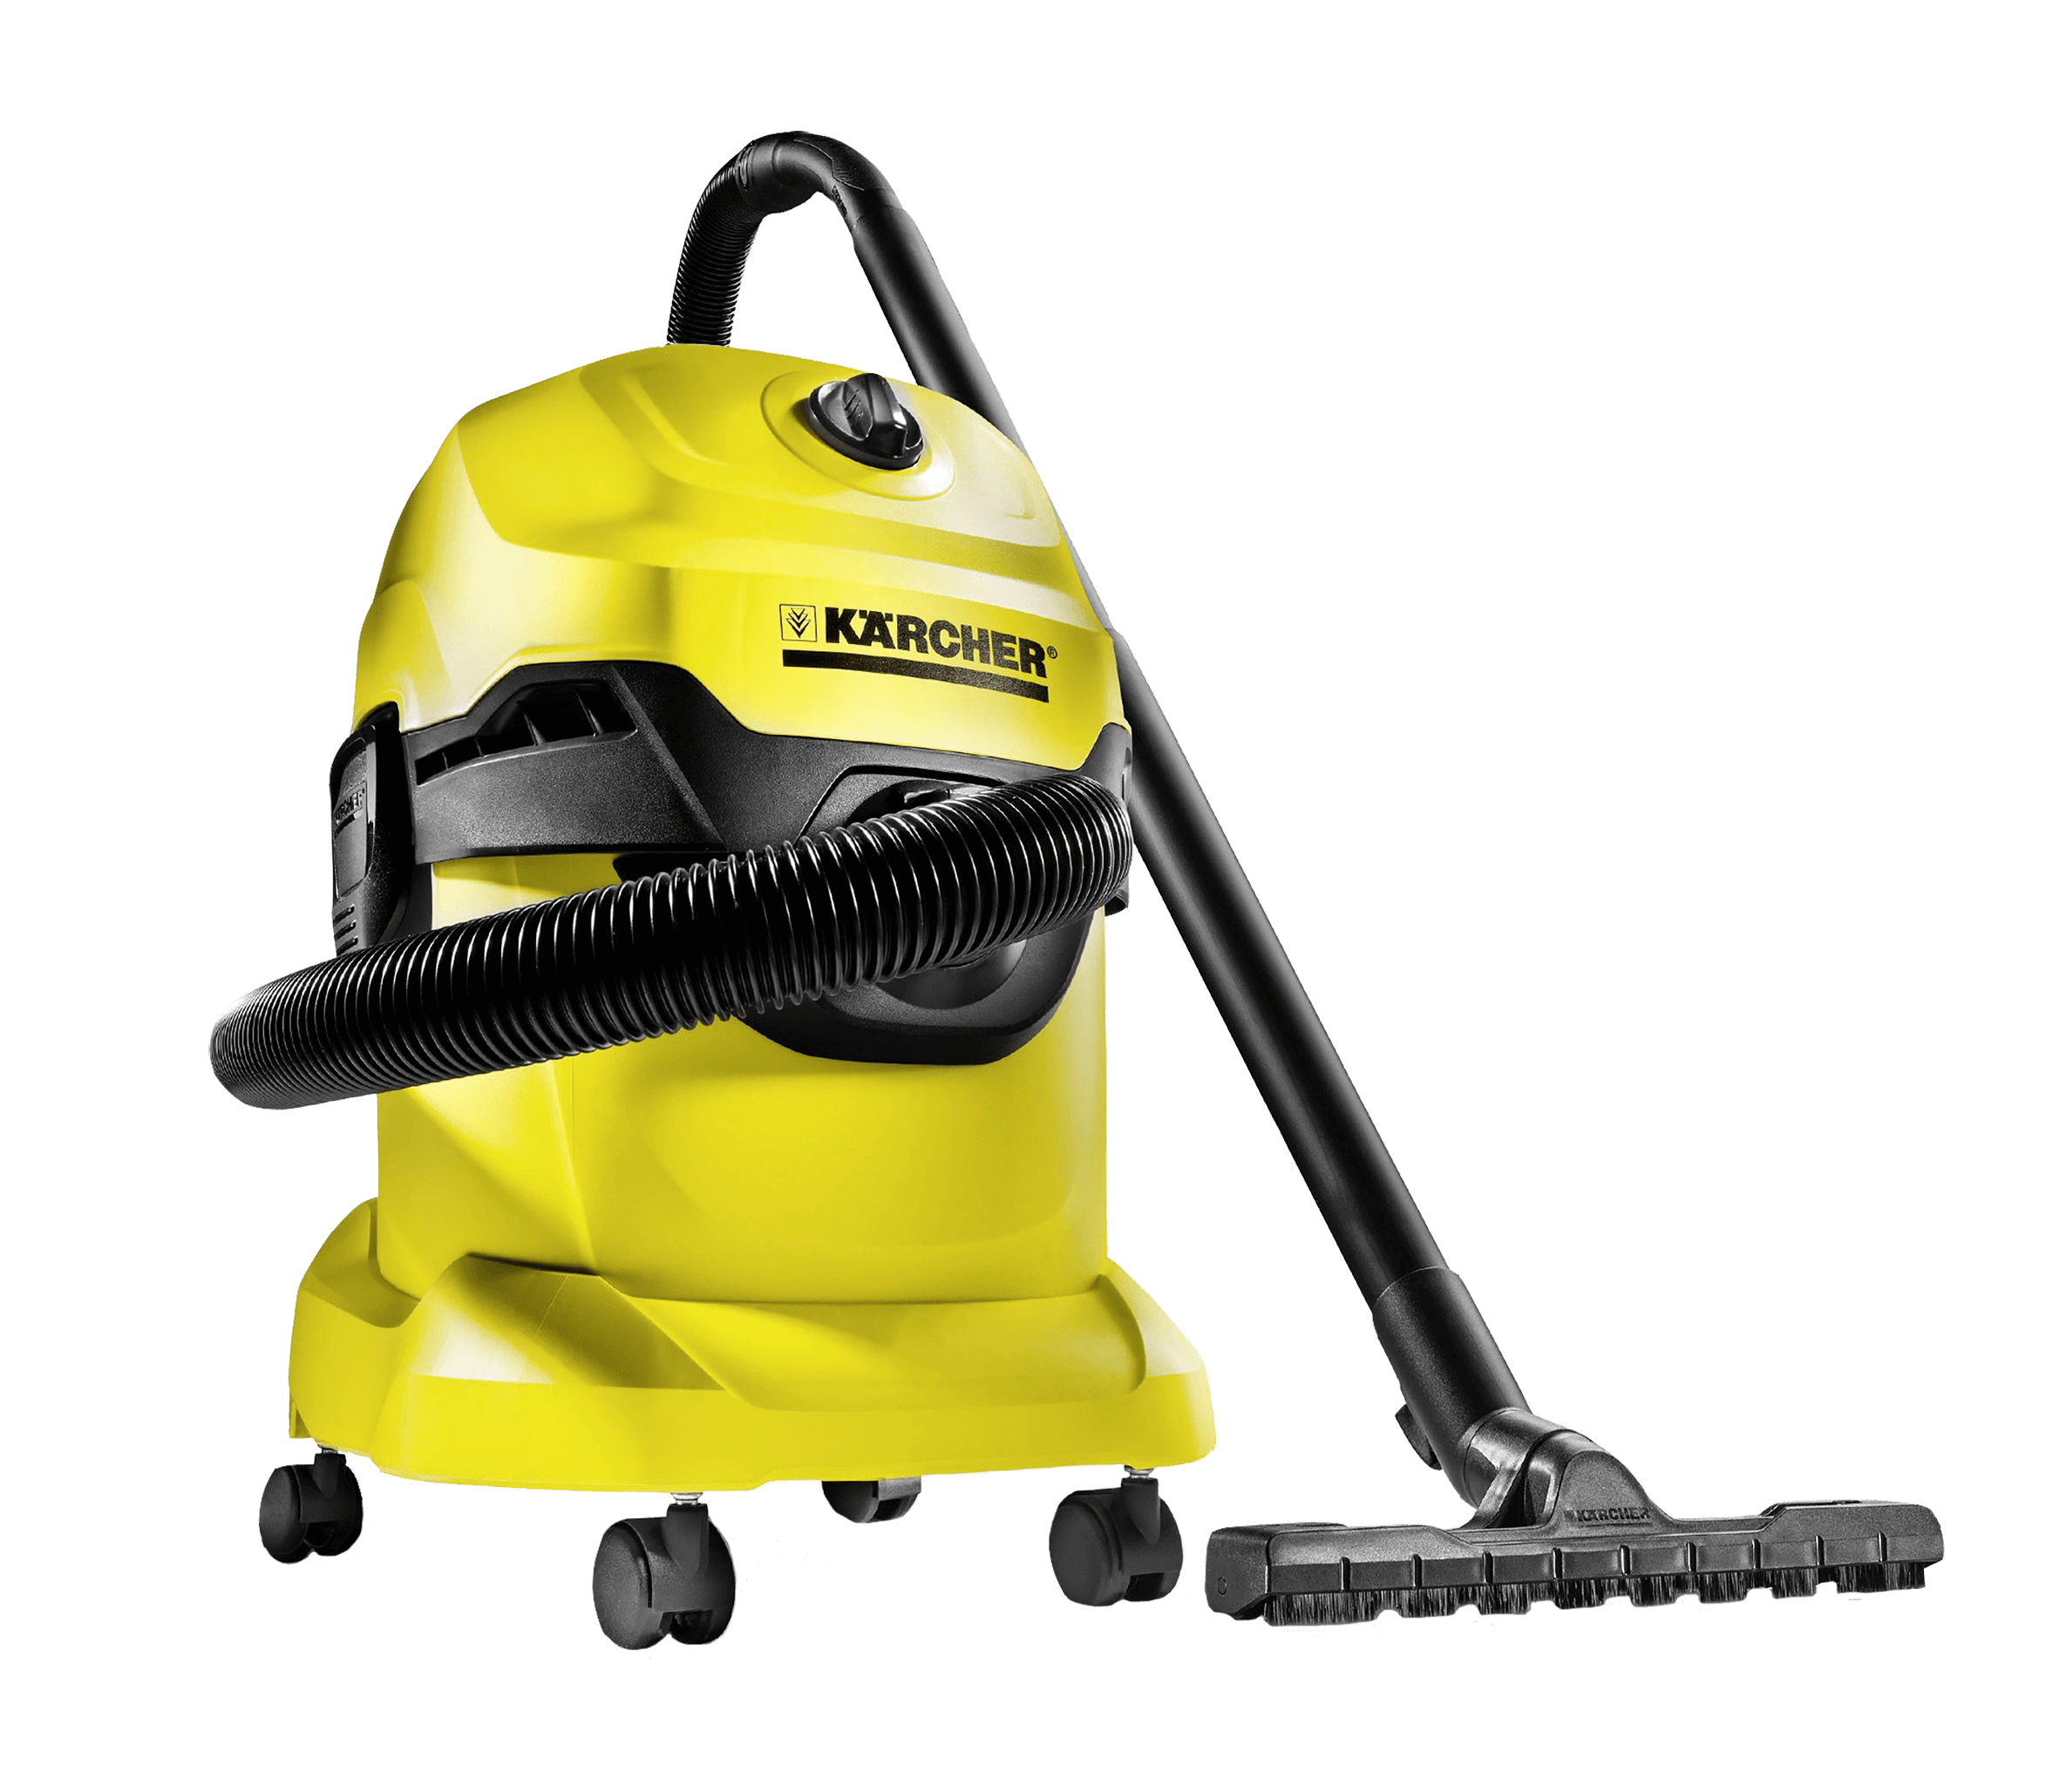 KARCHER VACUUM CLEANER YELLOW MODEL WD4